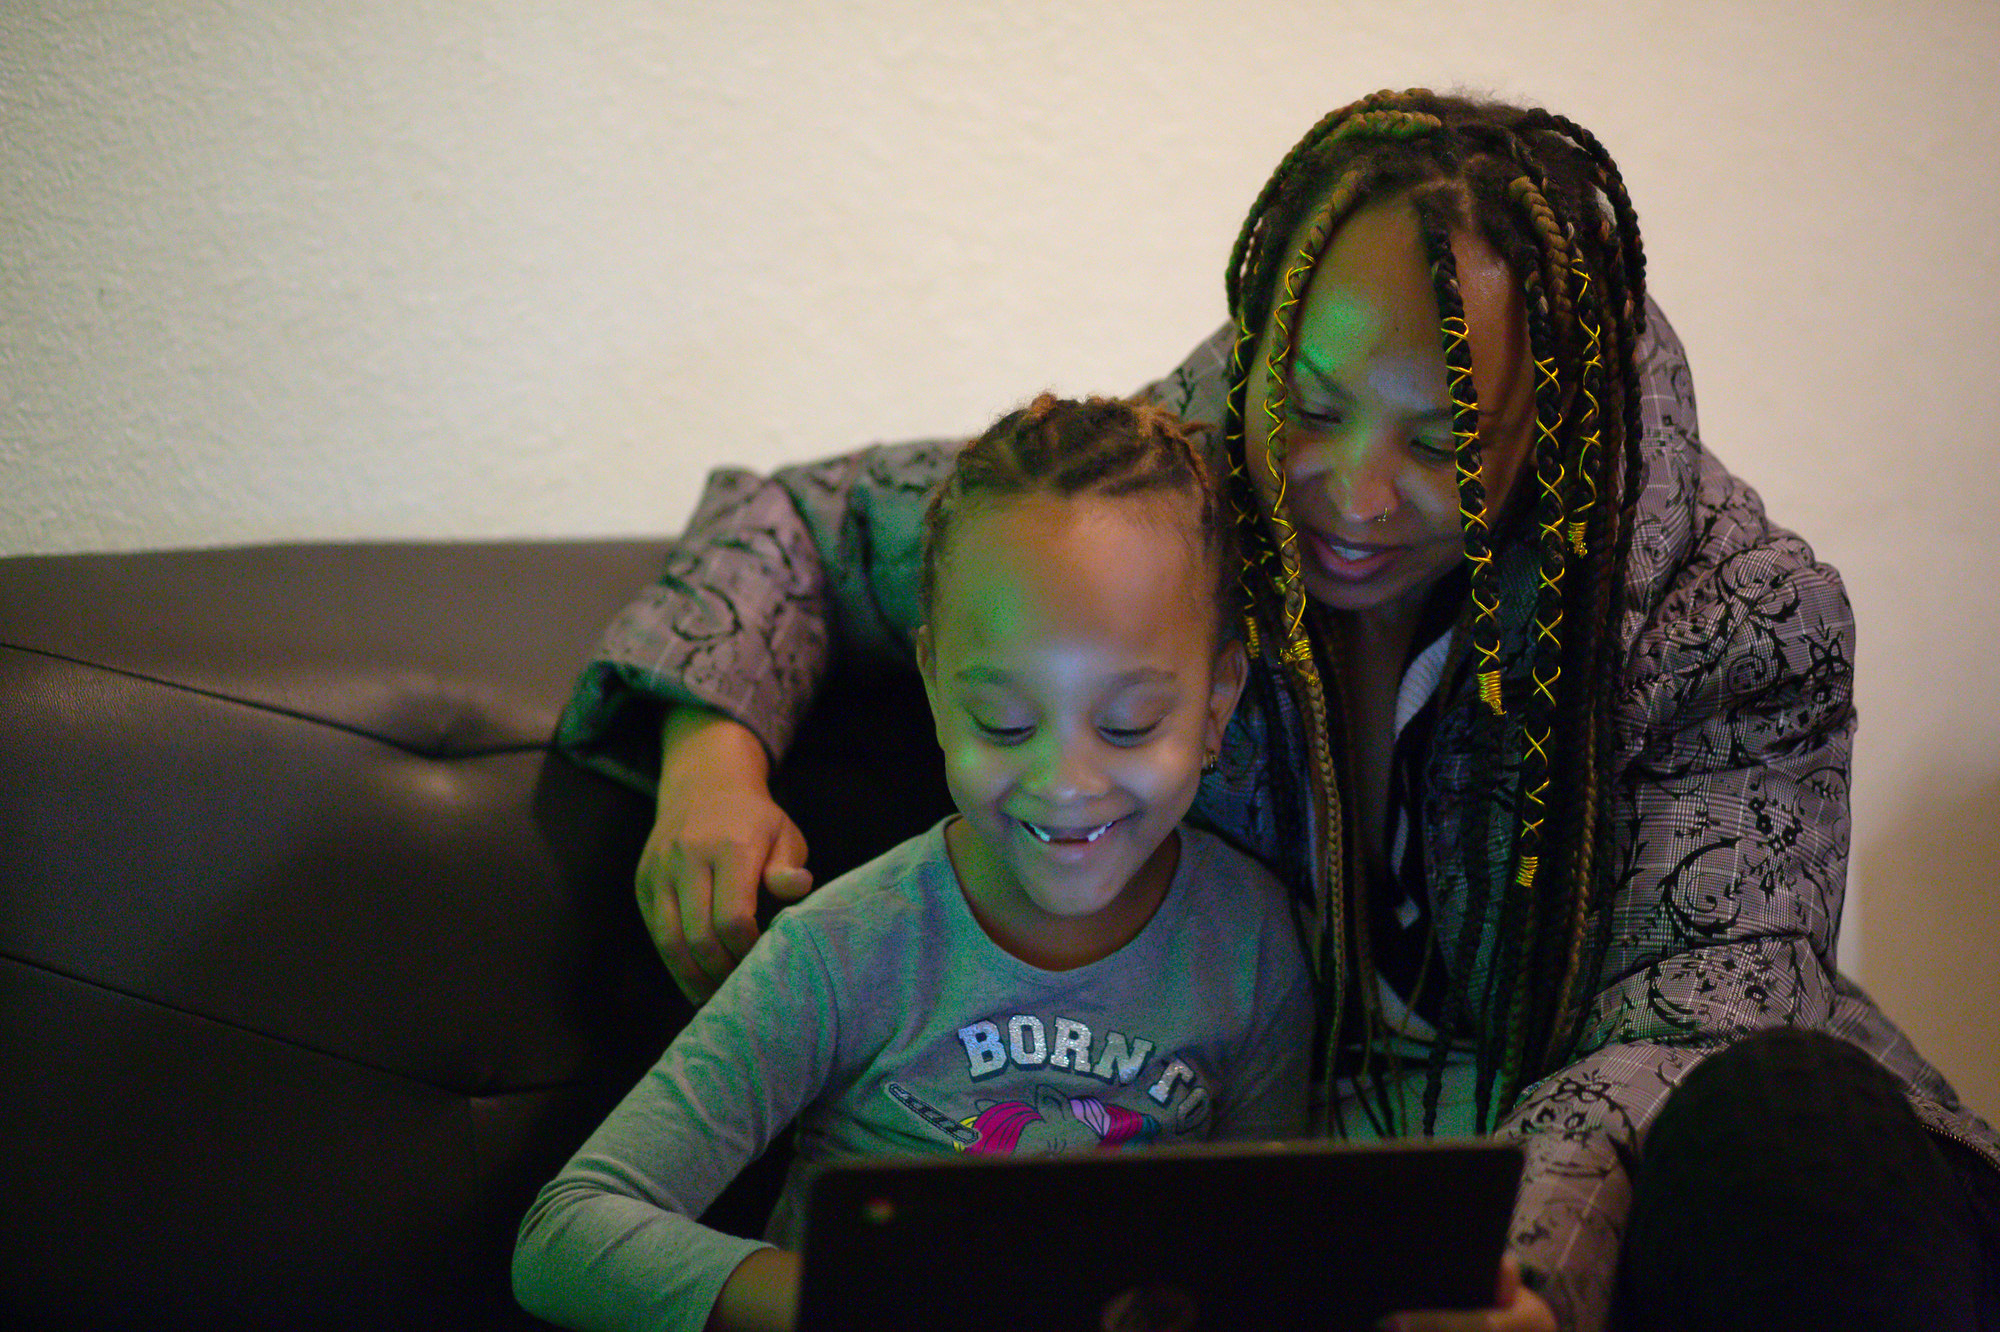 Khan Mwezi helps her daughter, Martinode, with schoolwork at their home in Aurora, Nov. 14, 2020.